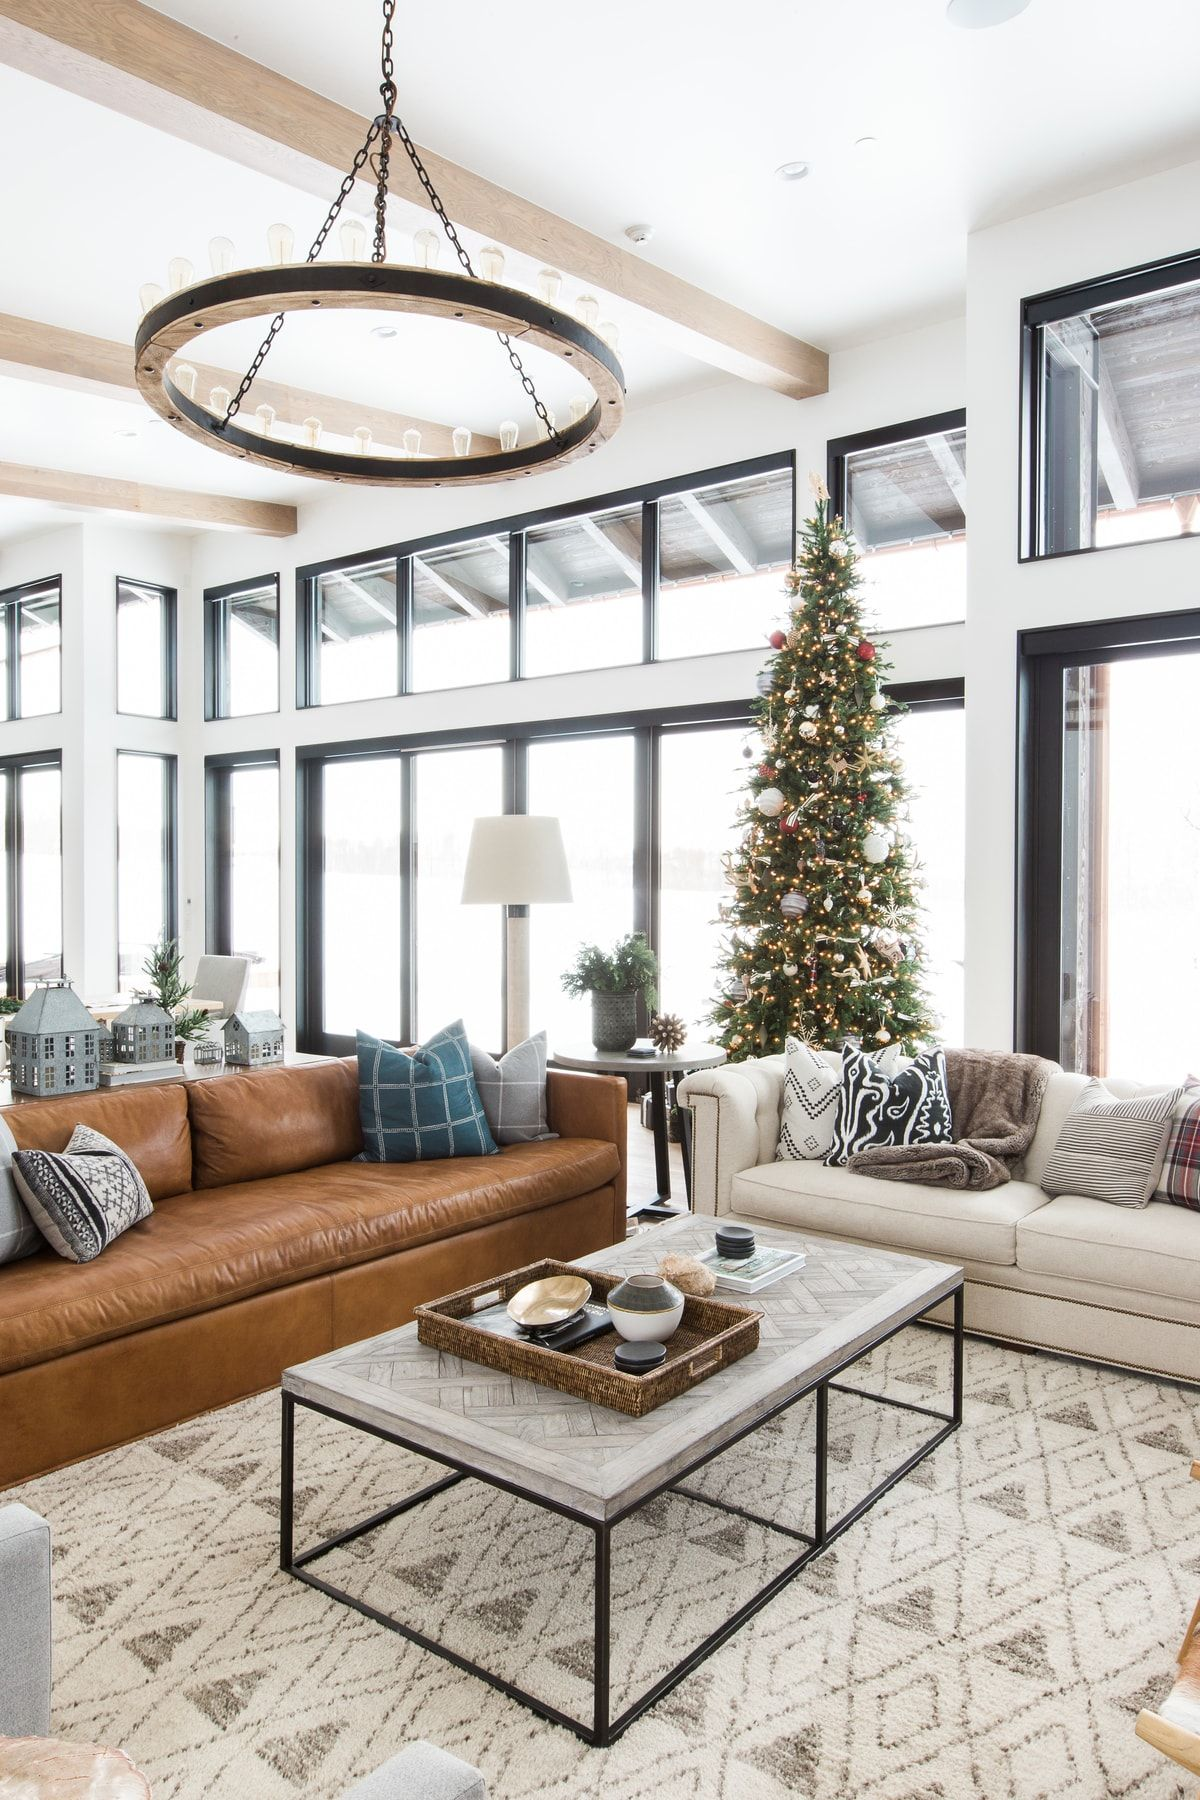 A Very Mountain Home Christmas | Pinterest | Studio mcgee, Studio ...